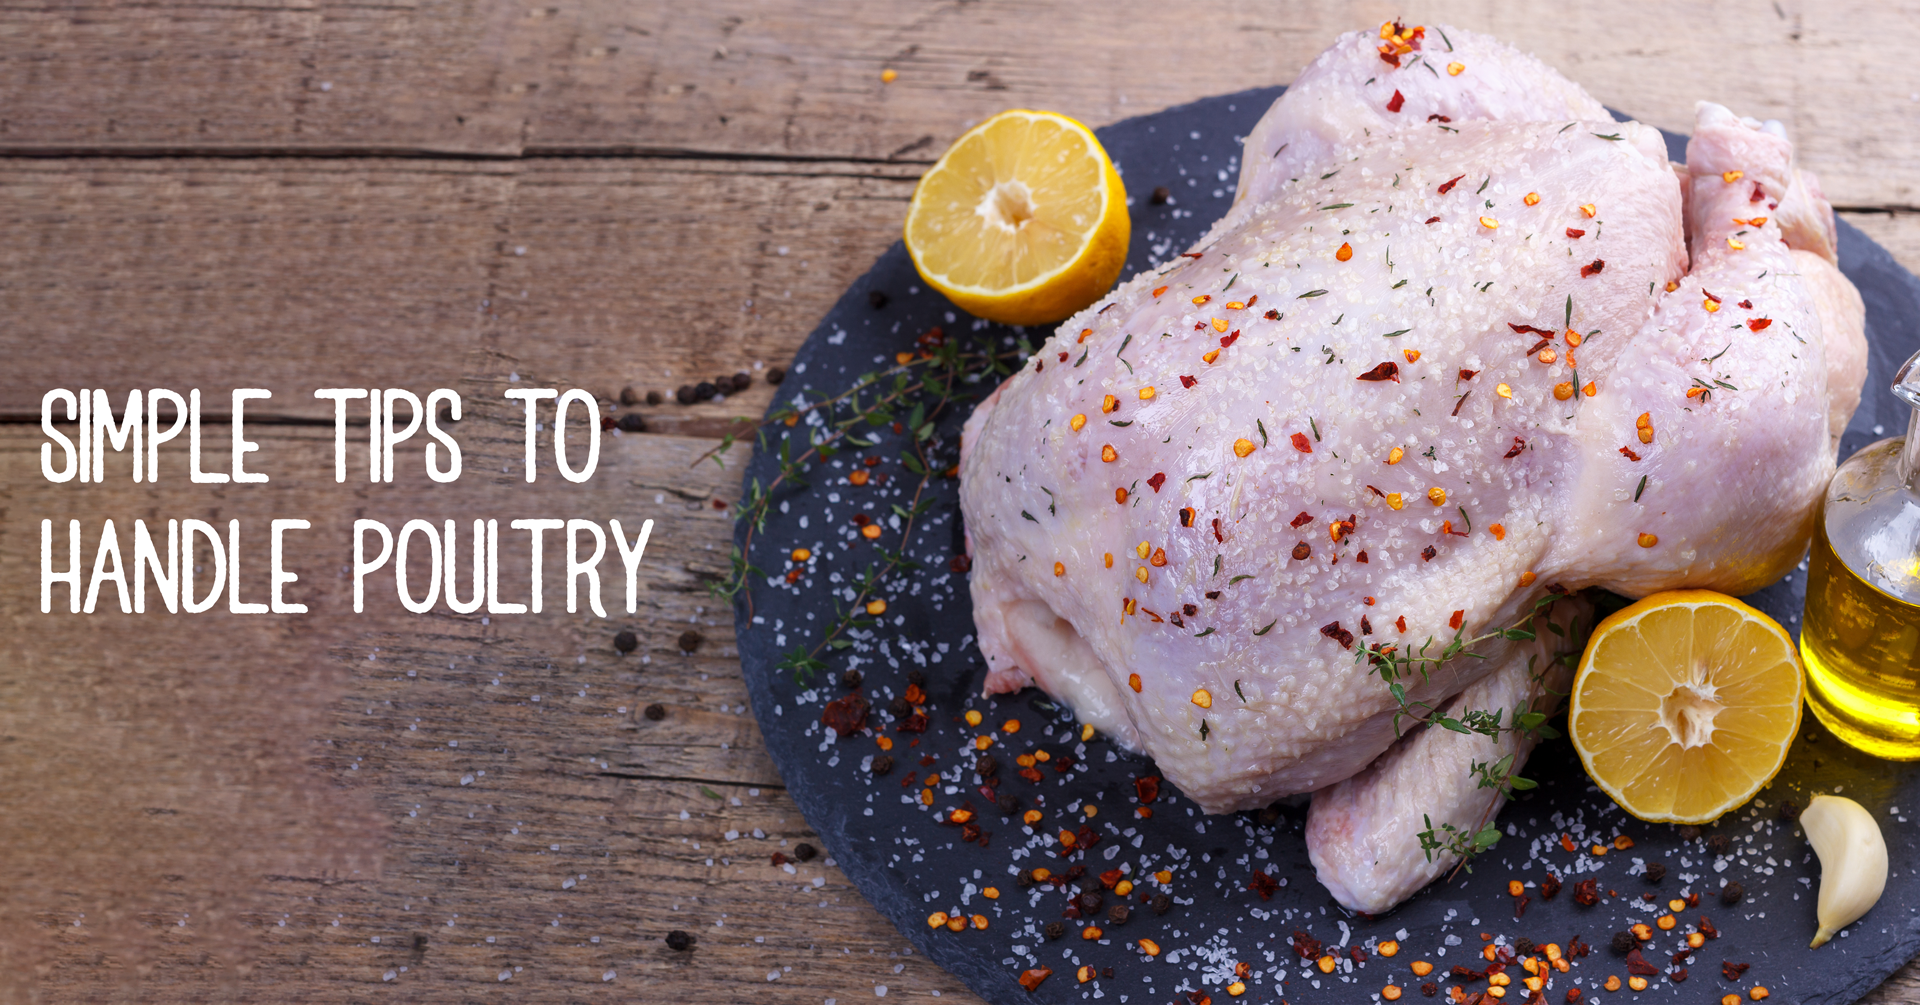 Simple tips to handle poultry